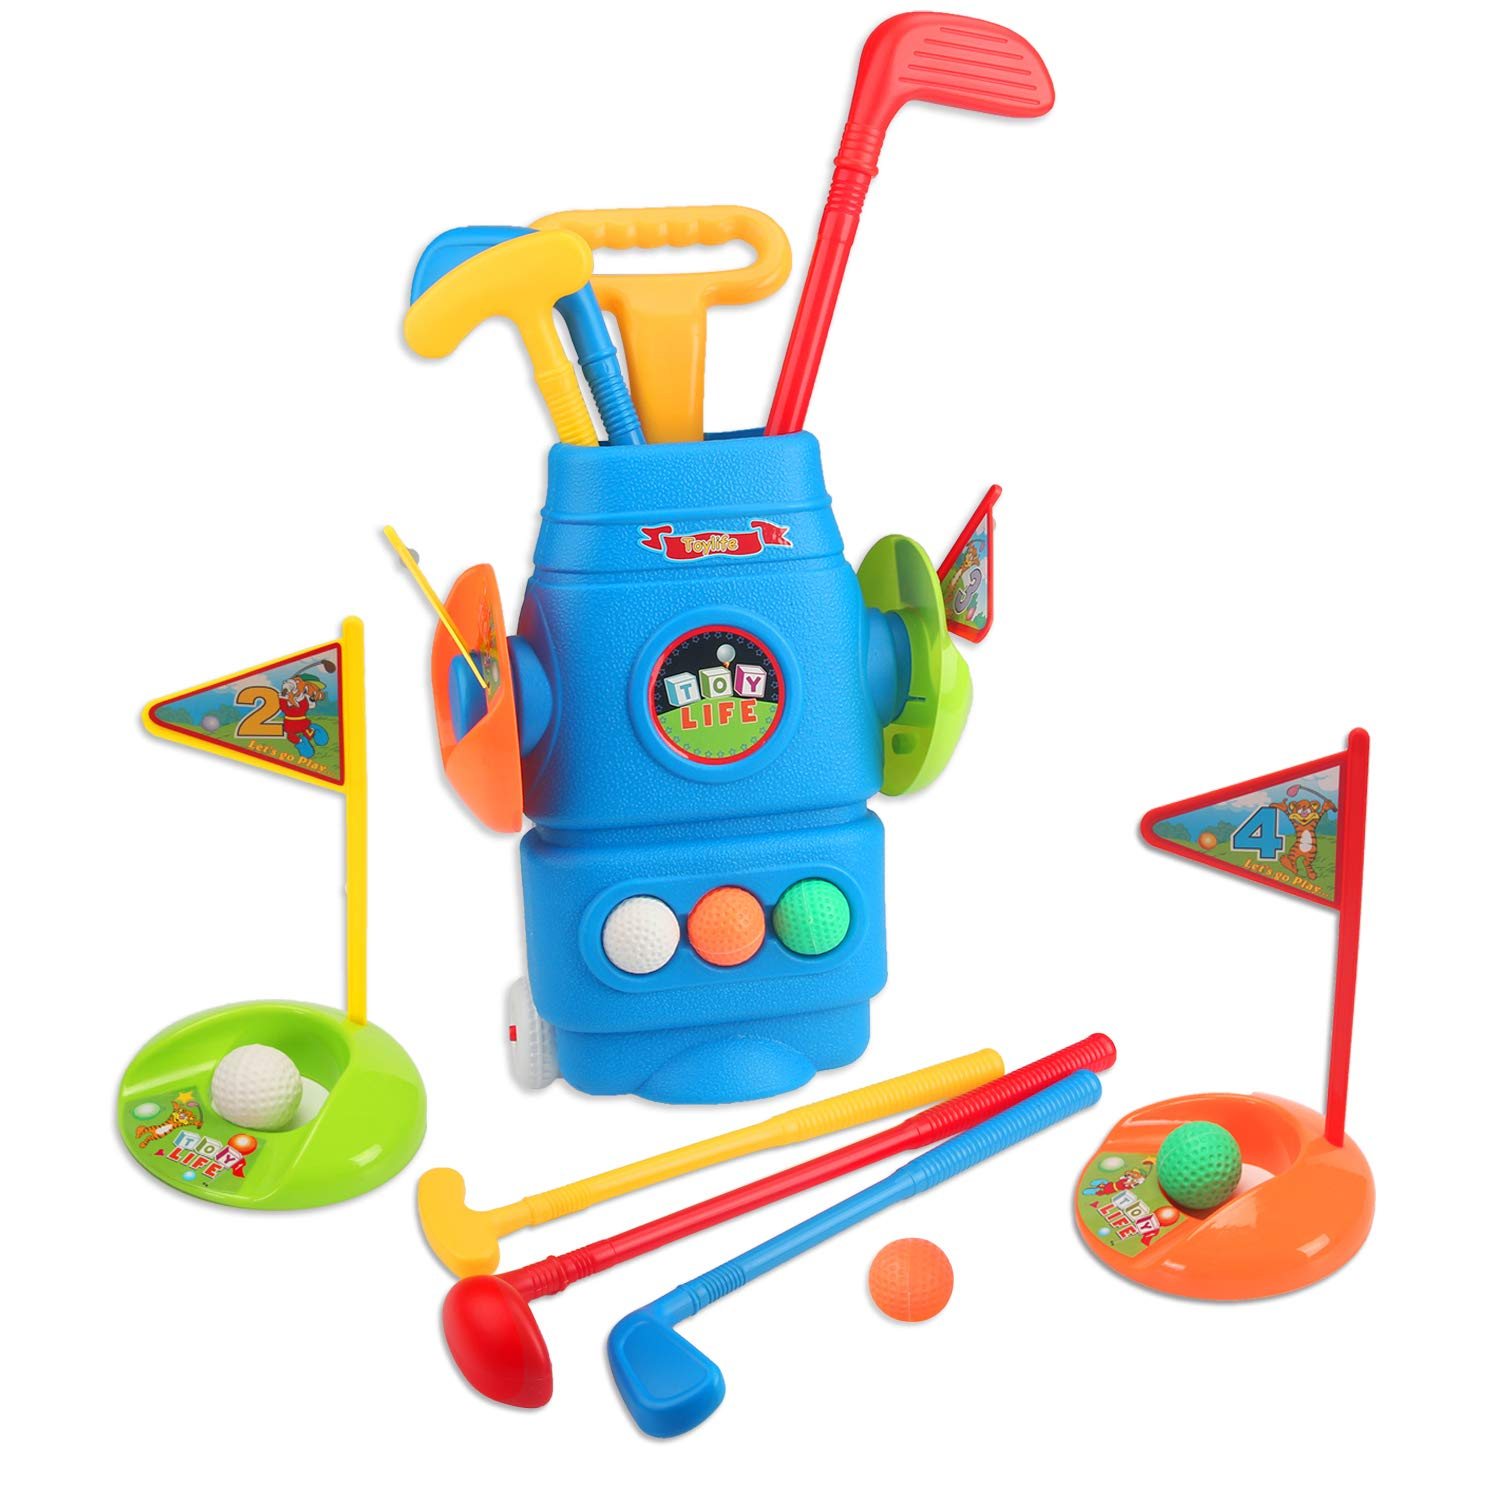 Toy Life Kids Golf Clubs | Todder Golf Set | Sports Toys for Toddlers | Comes with 1 Iron, 1 Wood, 1 Putter, 2 Flags, 2 Cups, & a Rolling Golf Bag for Children Ages 2 3 4 5 6 by Toy Life